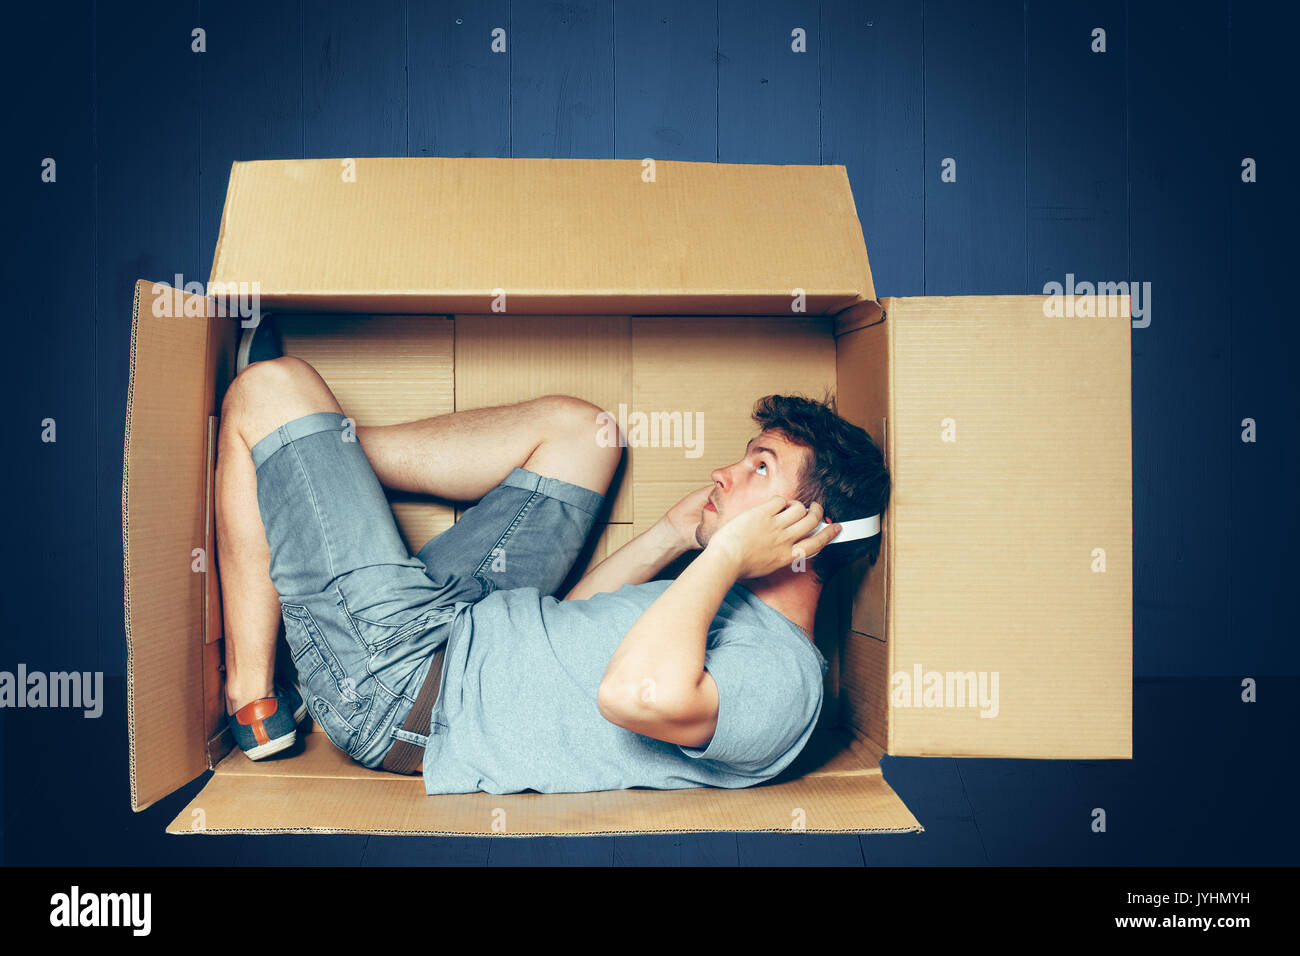 Introvert concept. The man sitting inside box with headphones - Stock Image